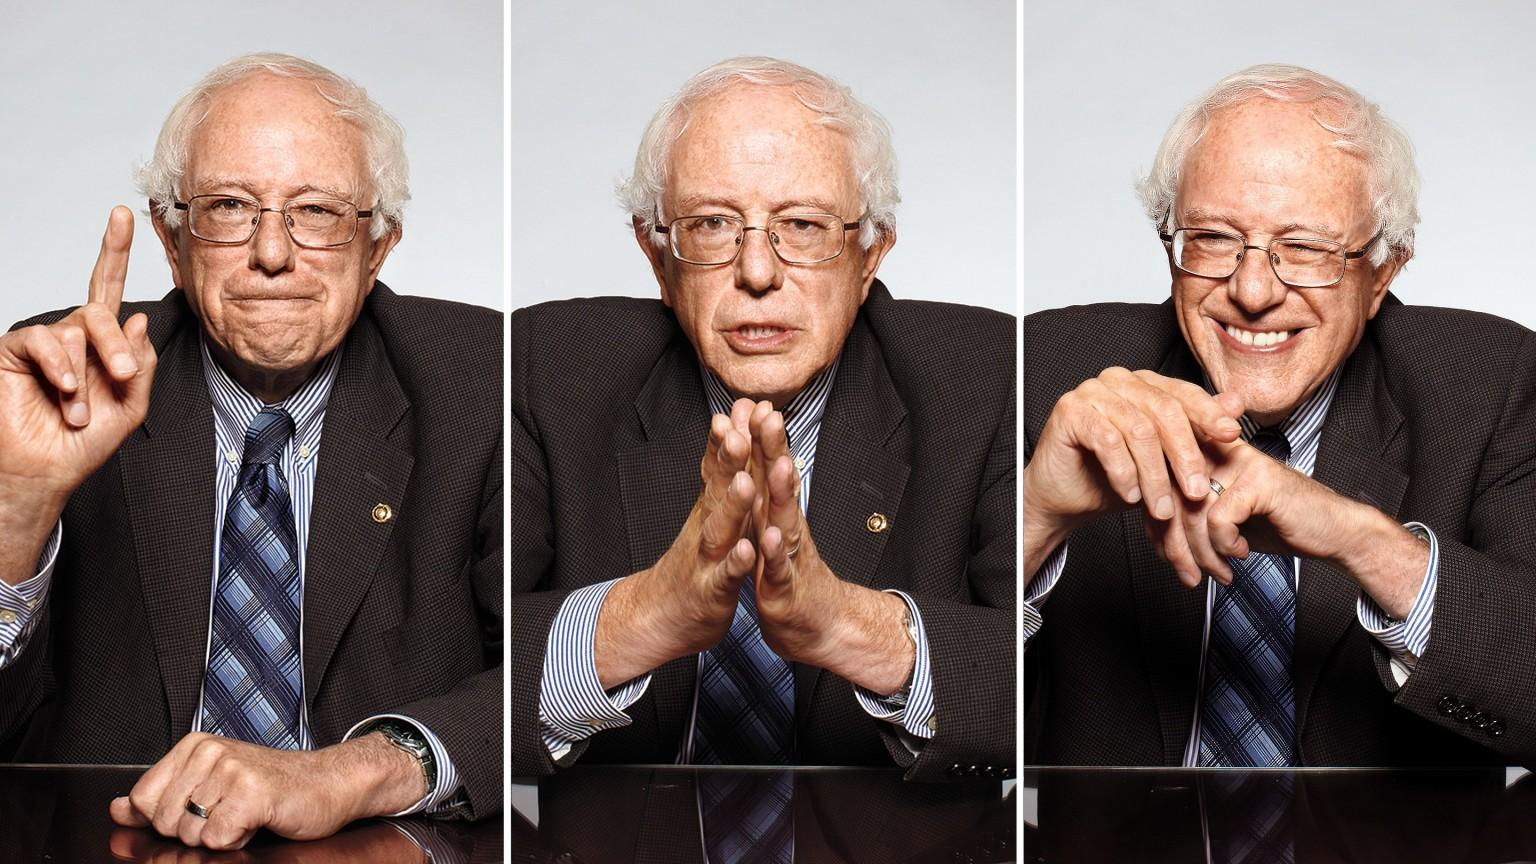 The October 2013 Playboy Inteview With Bernie Sanders